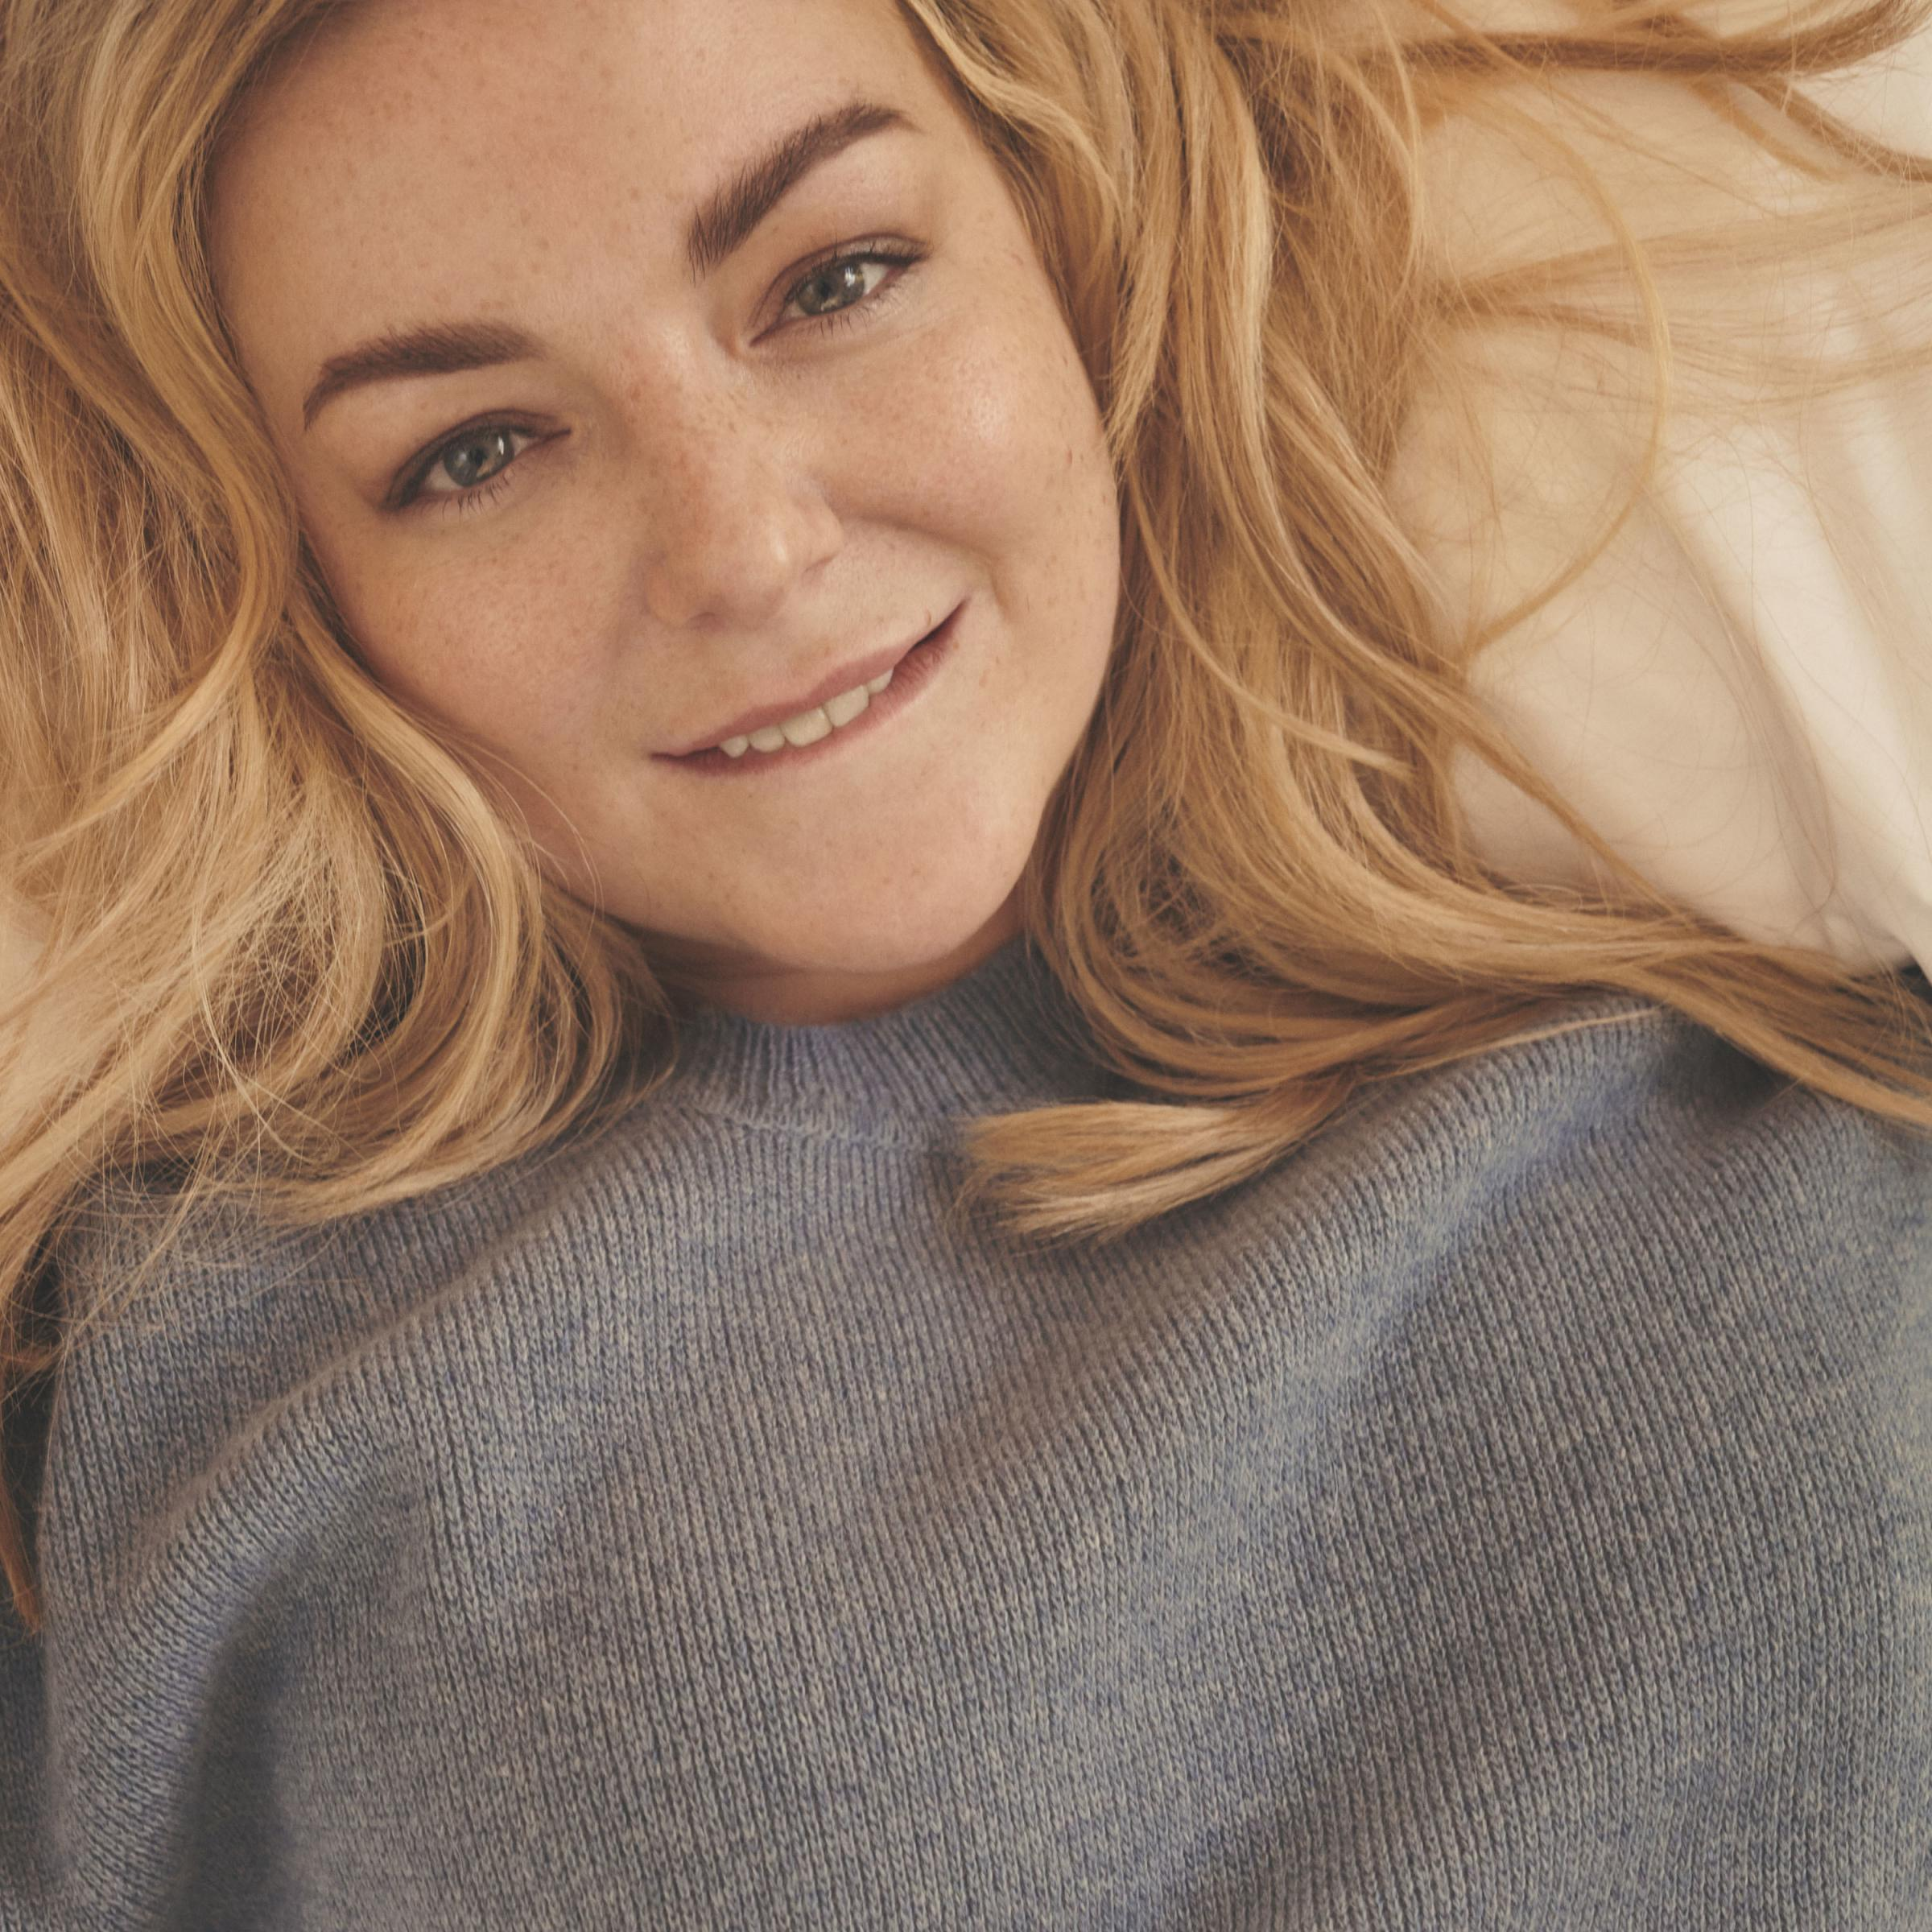 Sheridan Smith Returns To Her Iconic Portrayal Of Cilla Black For Musical Keighley News